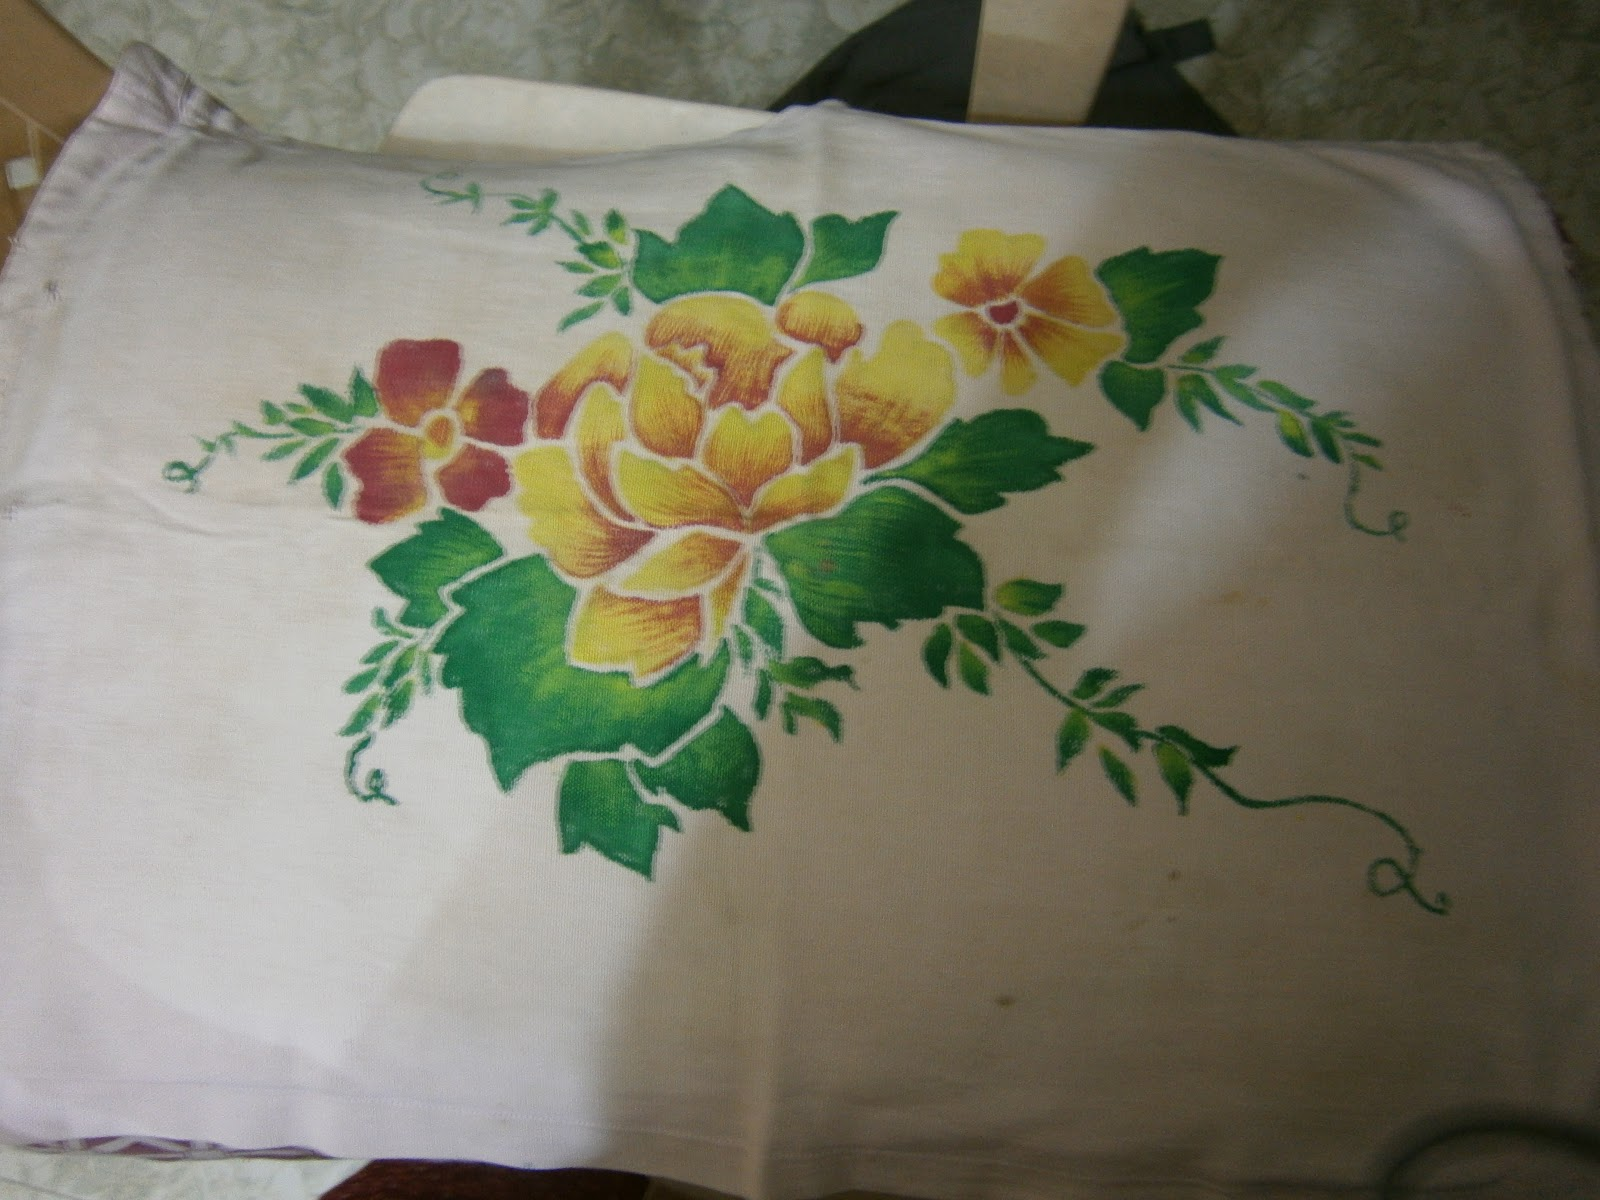 Pillow Cover Design For Painting: Pillow Cover Designing   Discover The Beauty Beneath The Art,